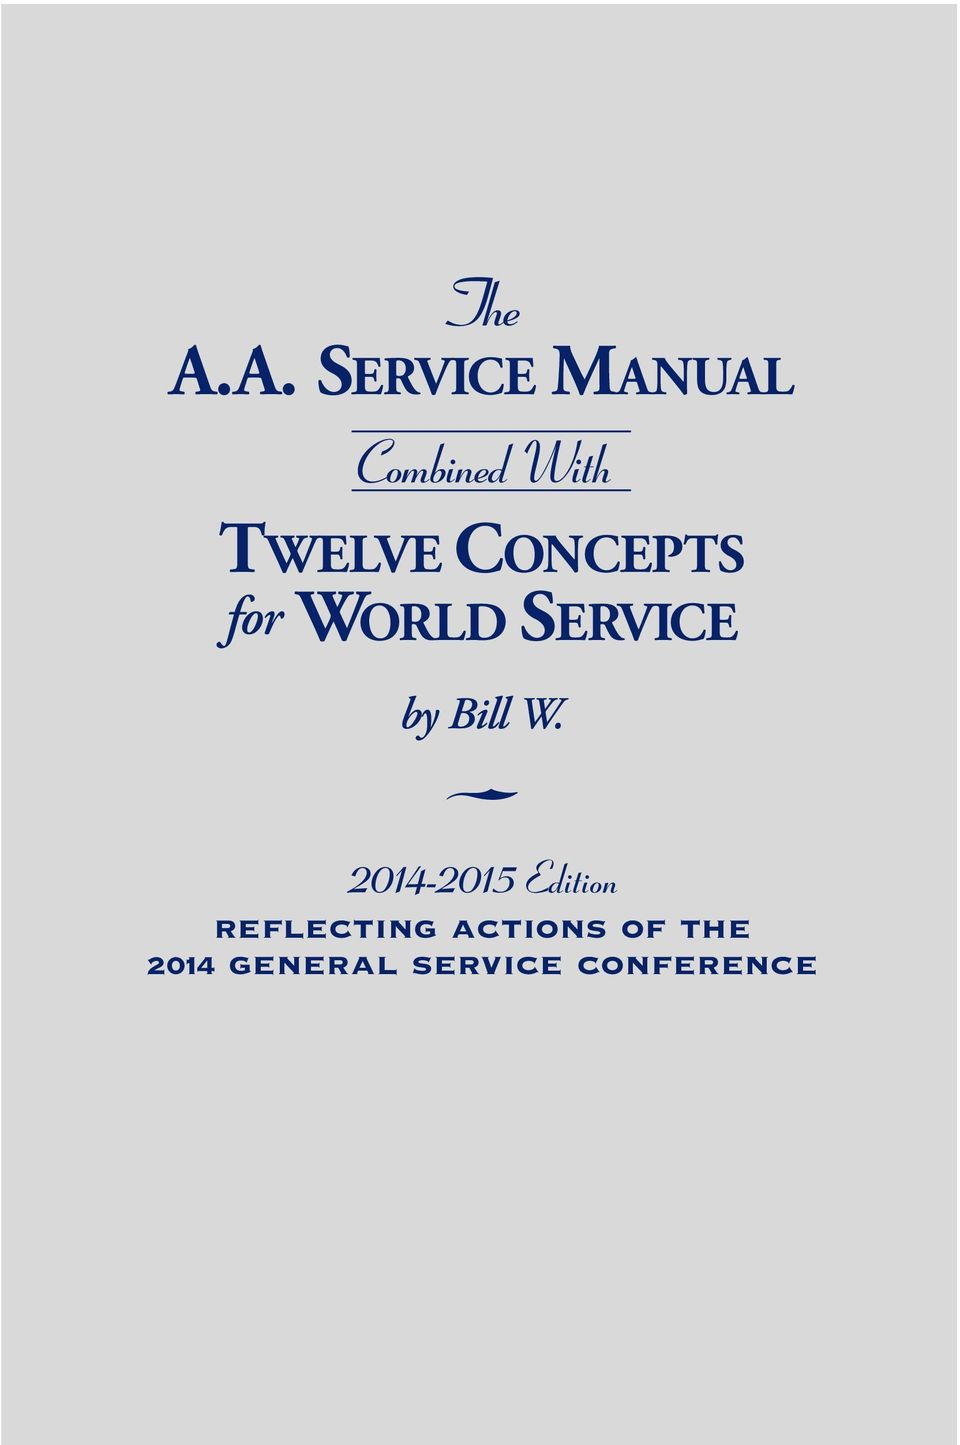 CONCEPTS for WORLD SERVICE by Bill W.